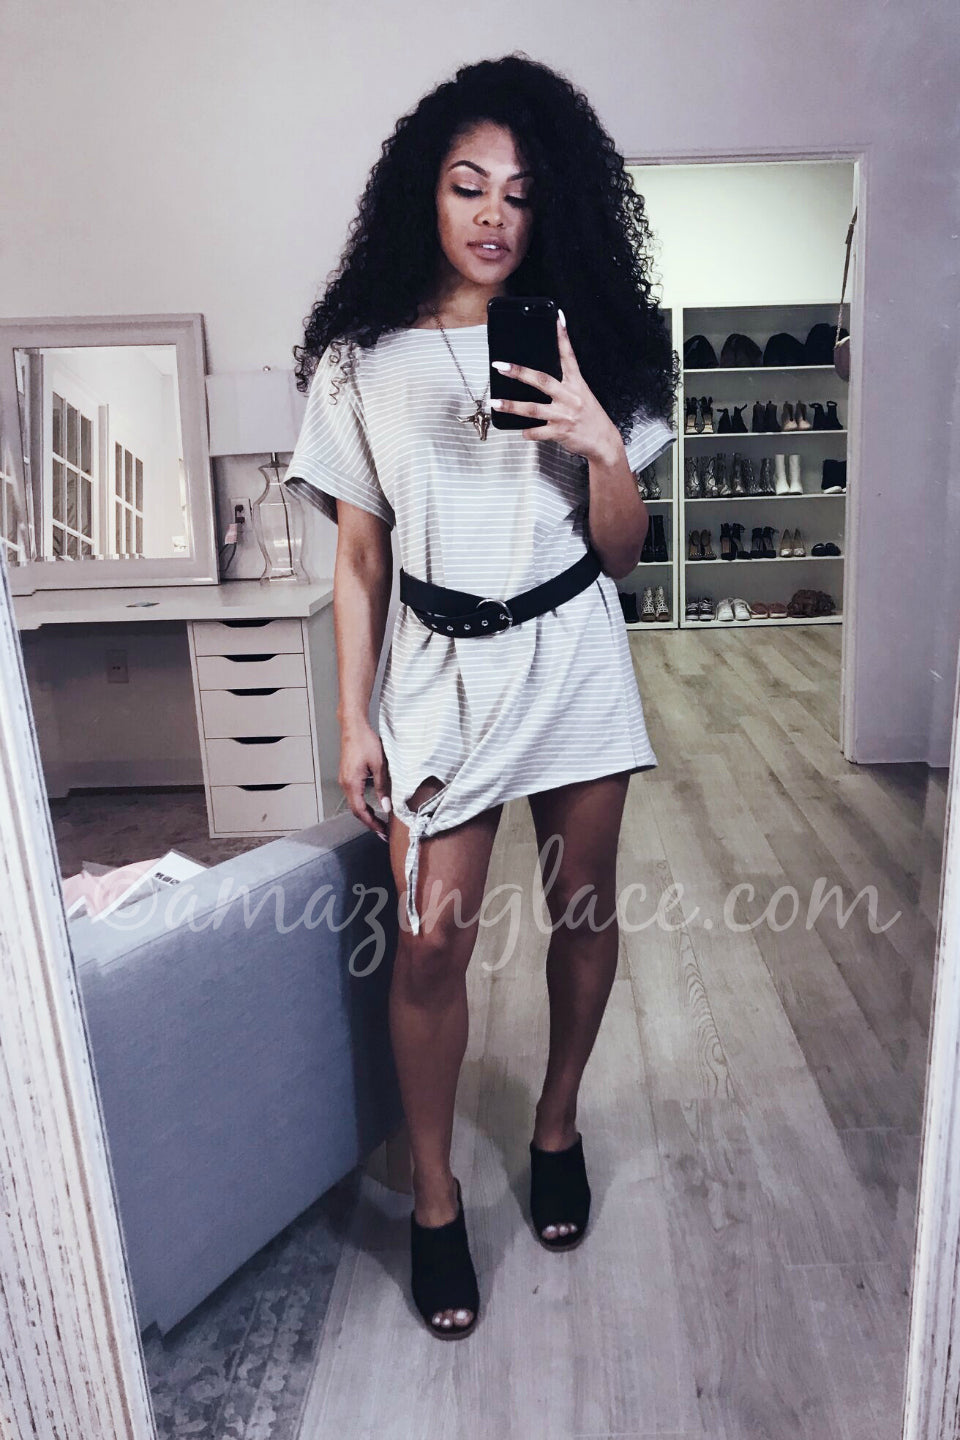 GRAY JERSEY DRESS AND BELT OUTFIT